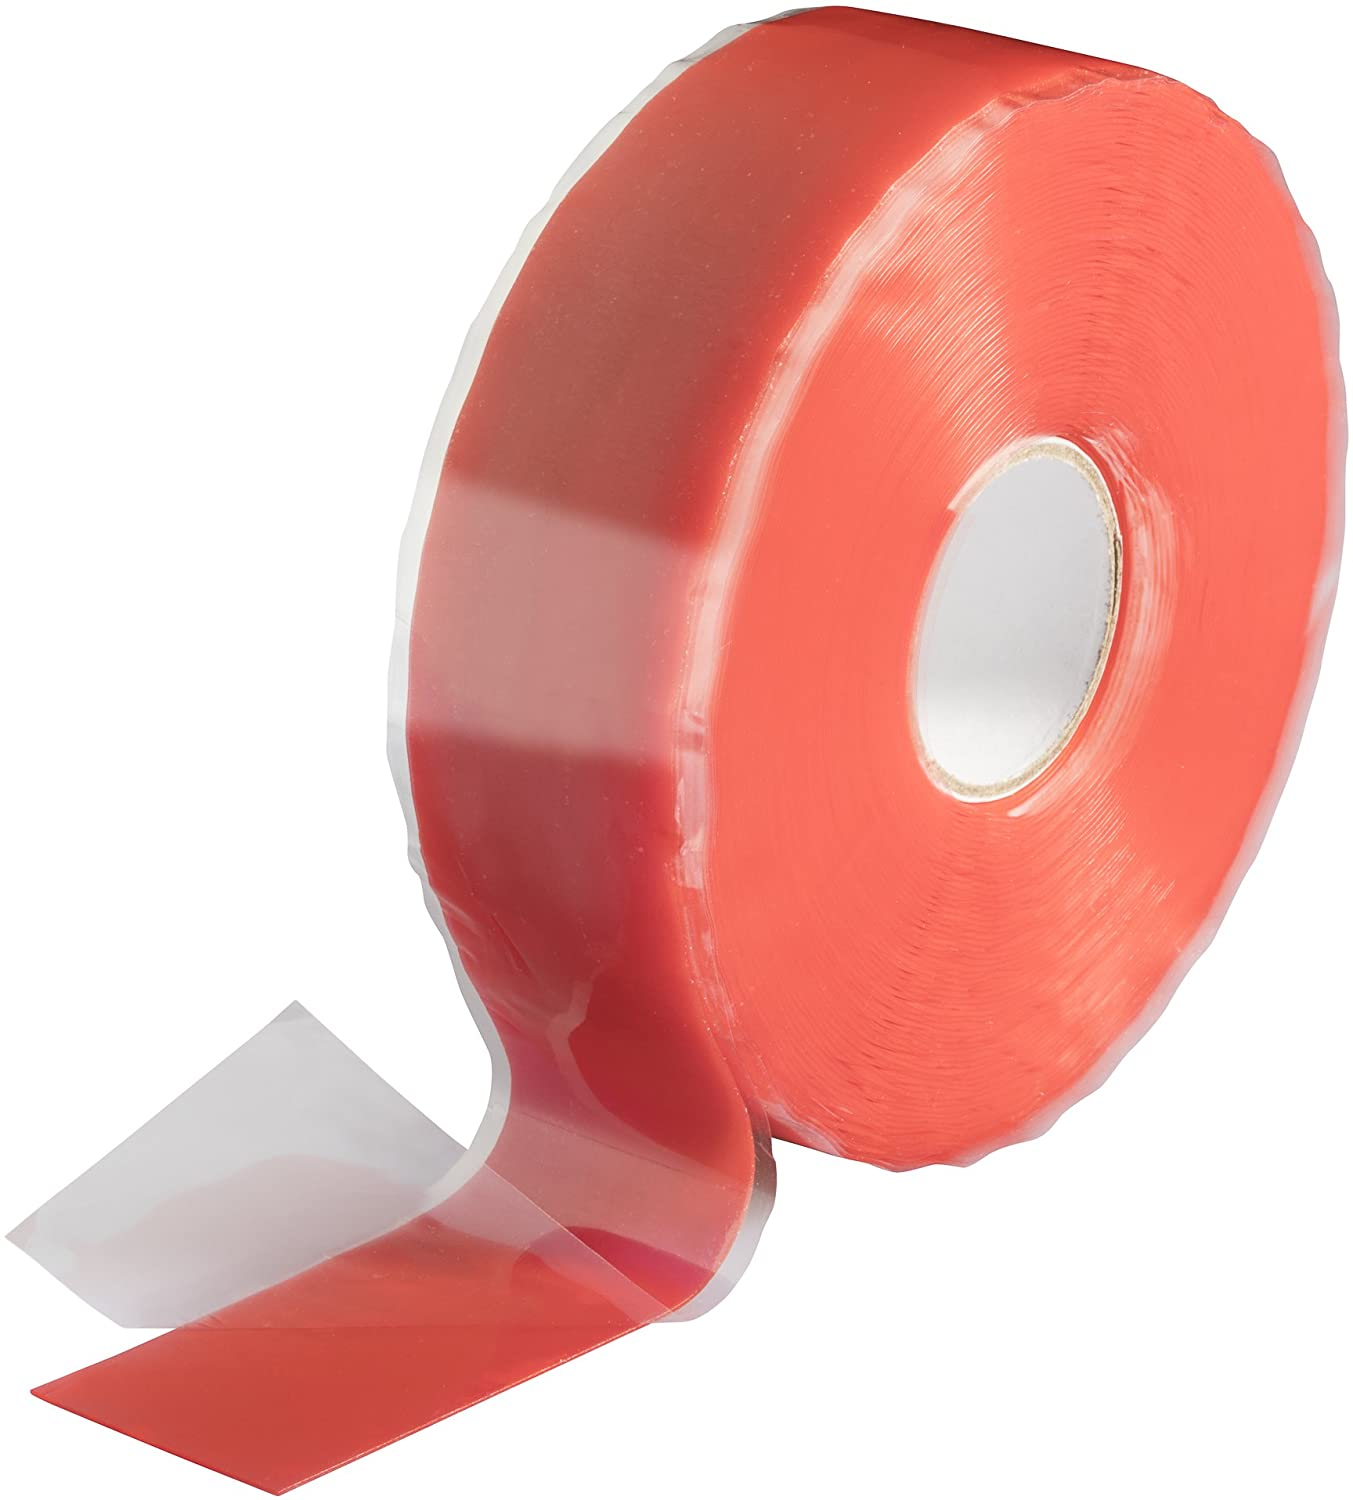 Poppstar 4x 3m Self-Fusing Silicone Band, Silicone Tape, Repair Tape, Electrical Tape and Sealing Strip (water-tight, air-tight), 25mm wide, transparent 1008720